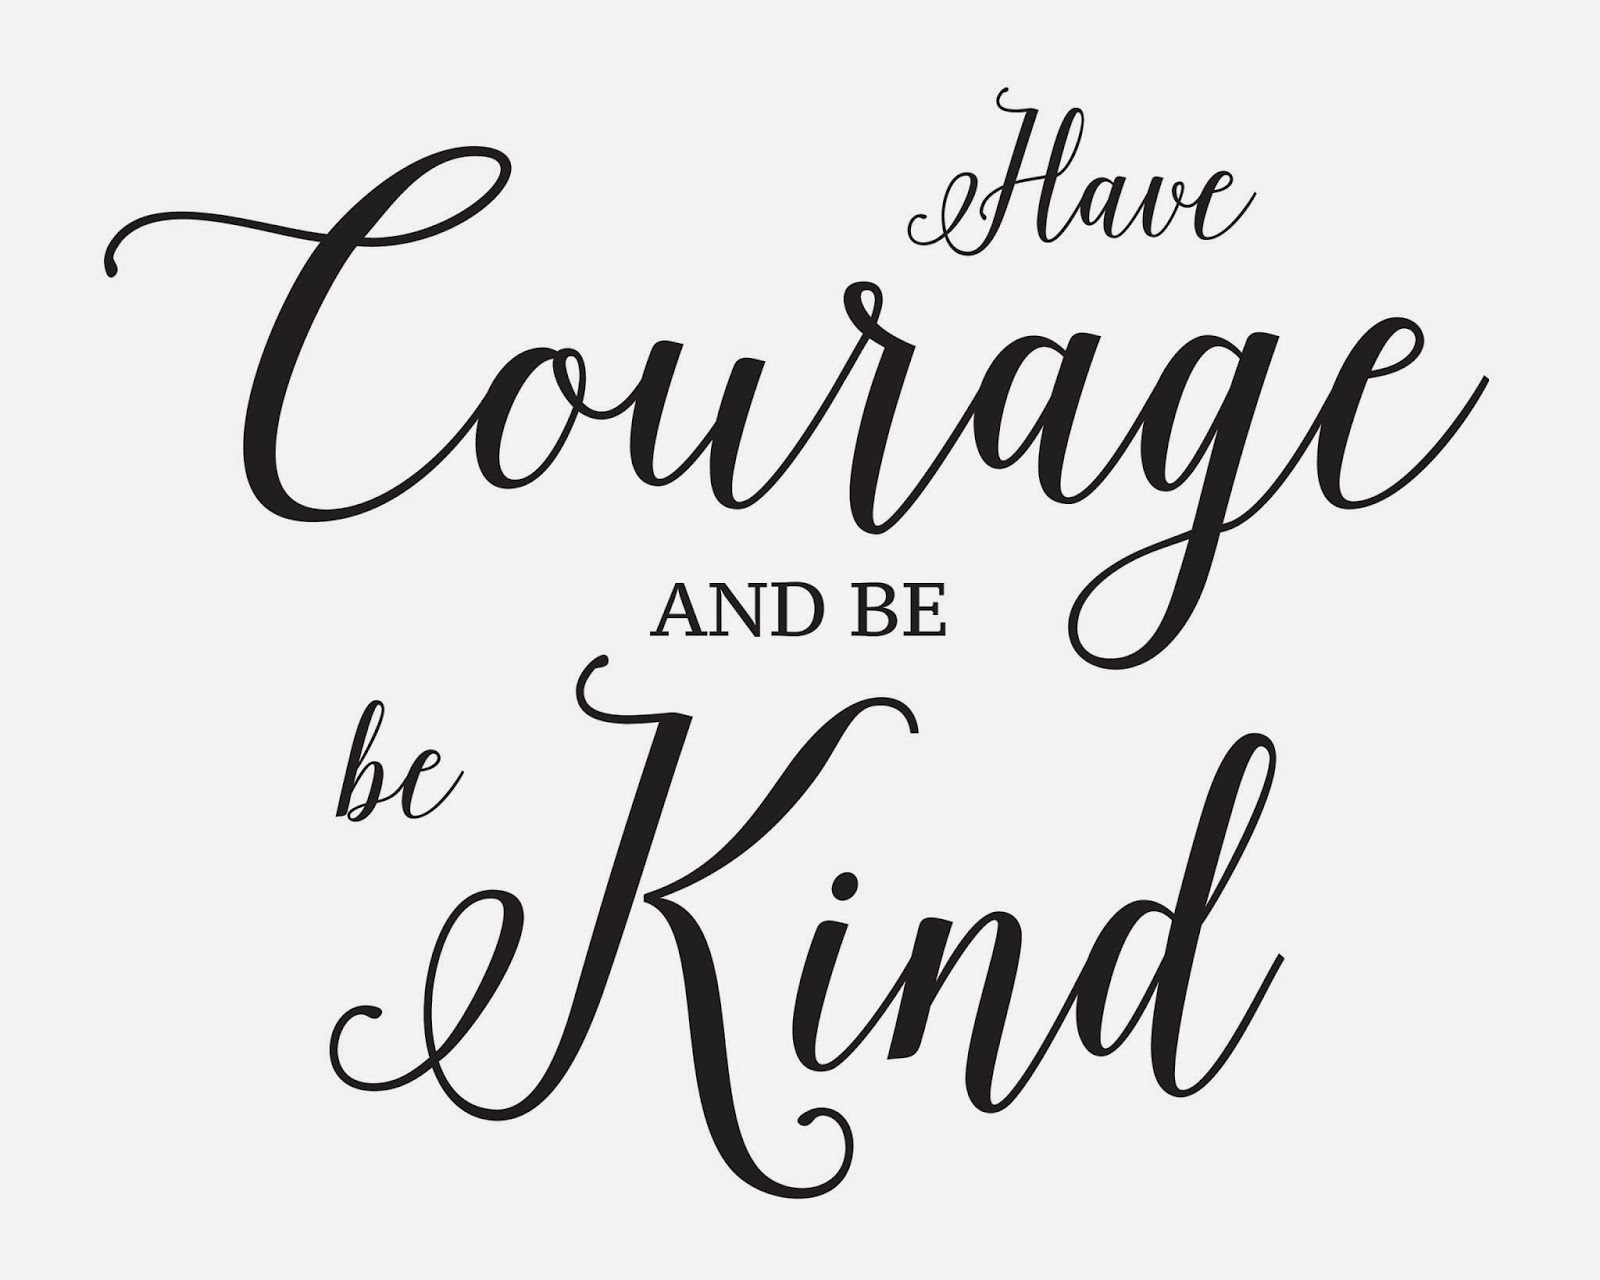 graphic about Have Courage and Be Kind Printable called The Millennial Mama: Absolutely free Down load - Contain Braveness and Be Type